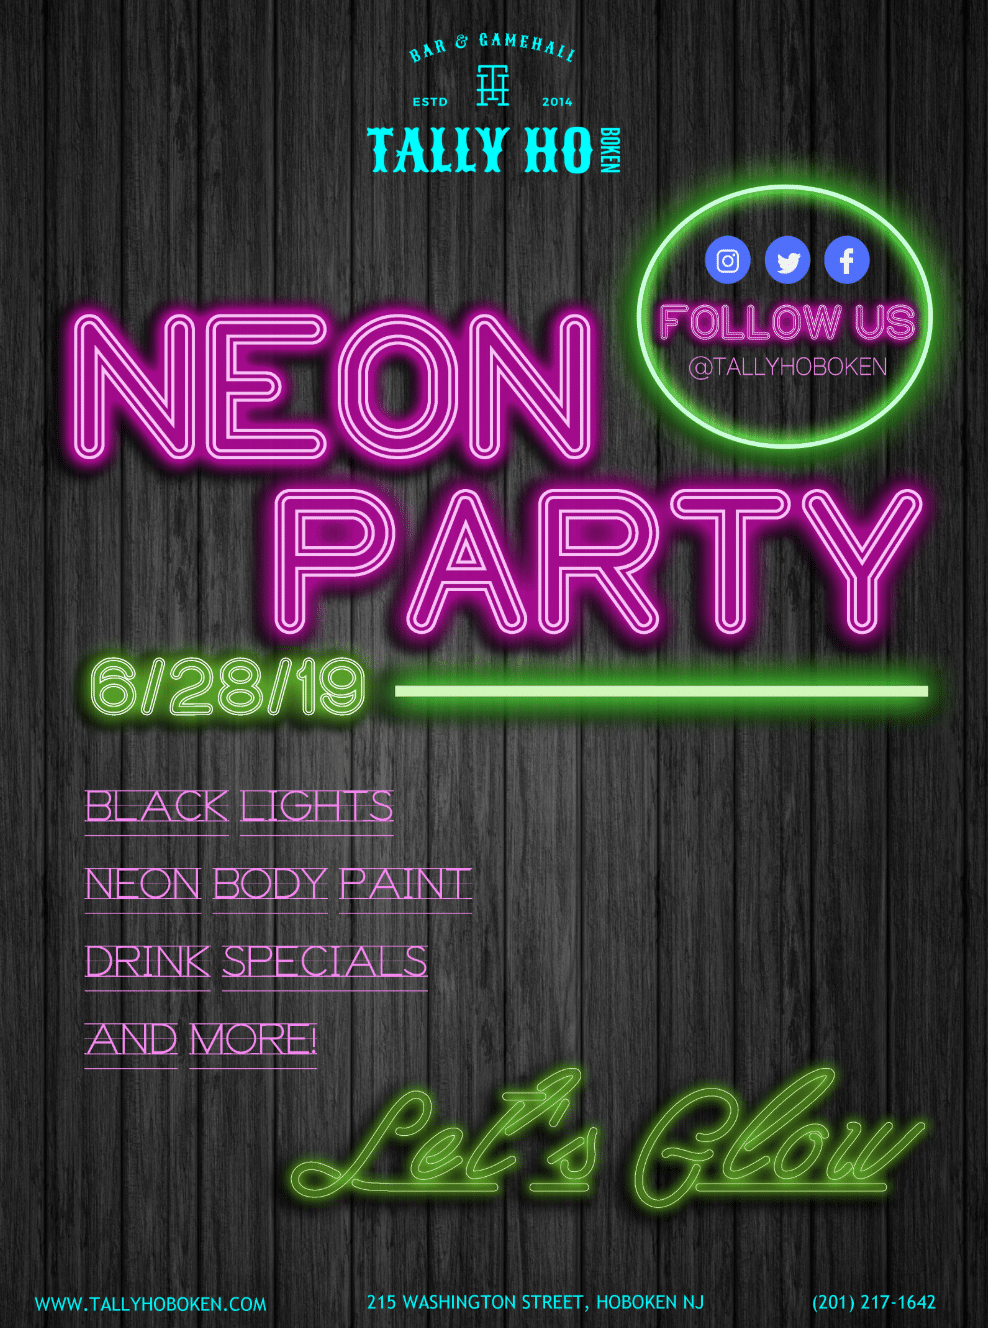 neon party tally ho